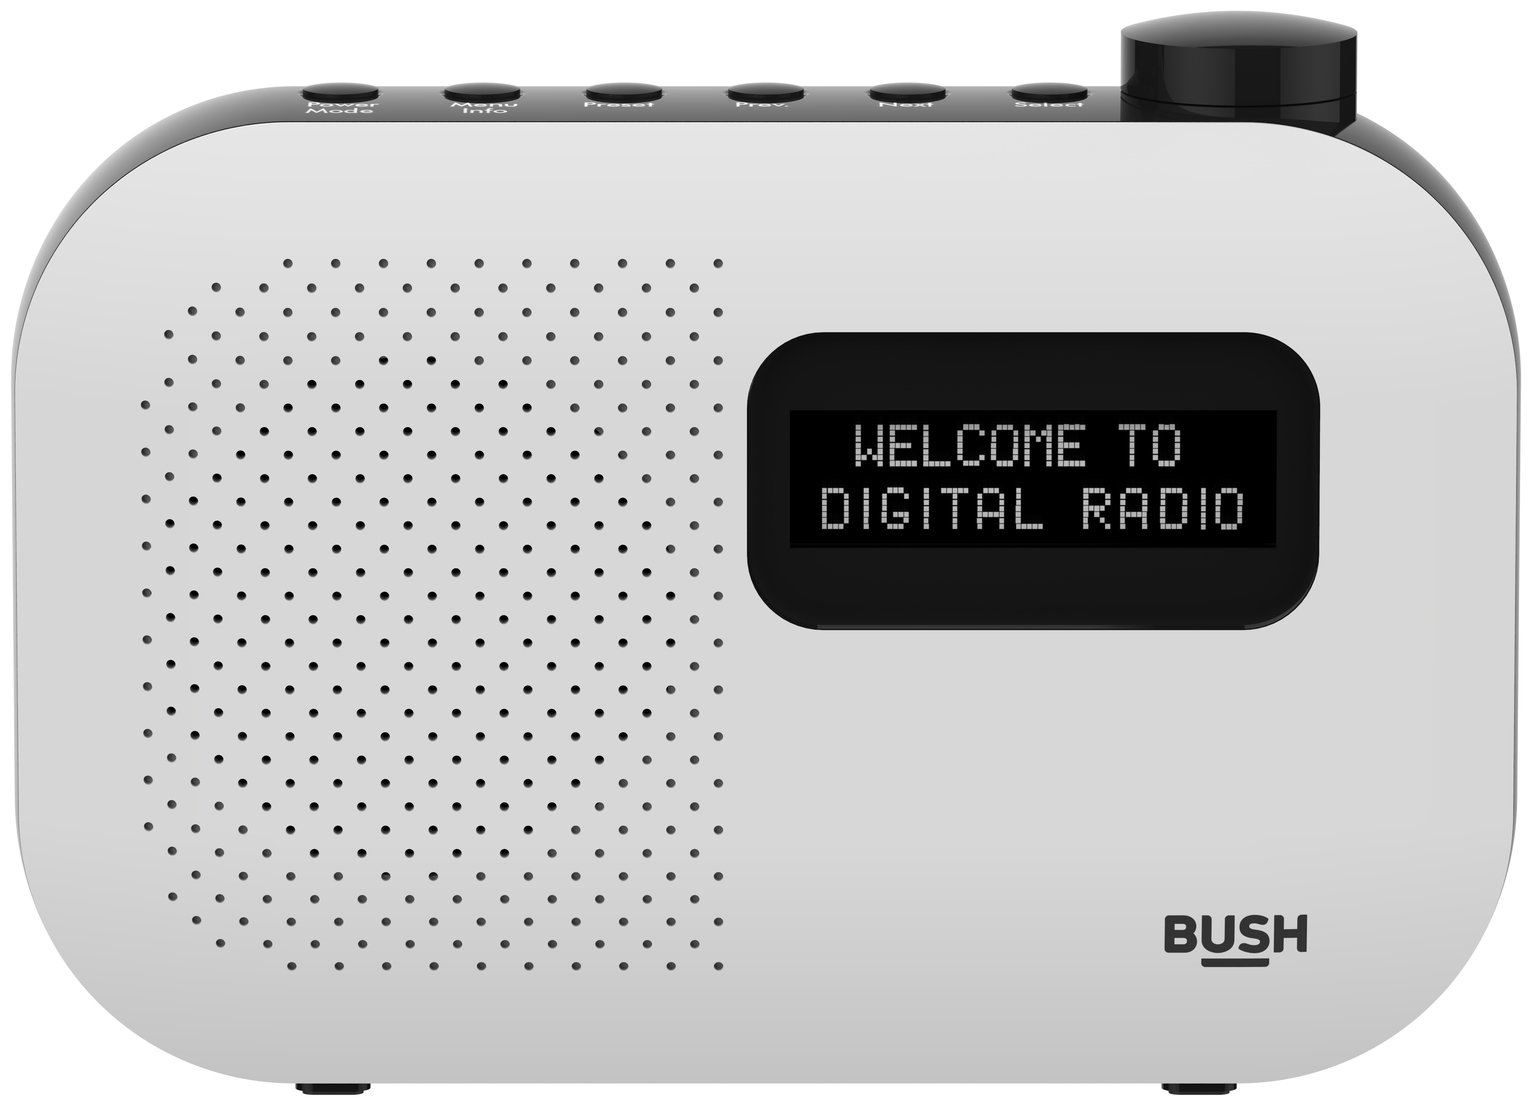 Bush Mono DAB Radio - White